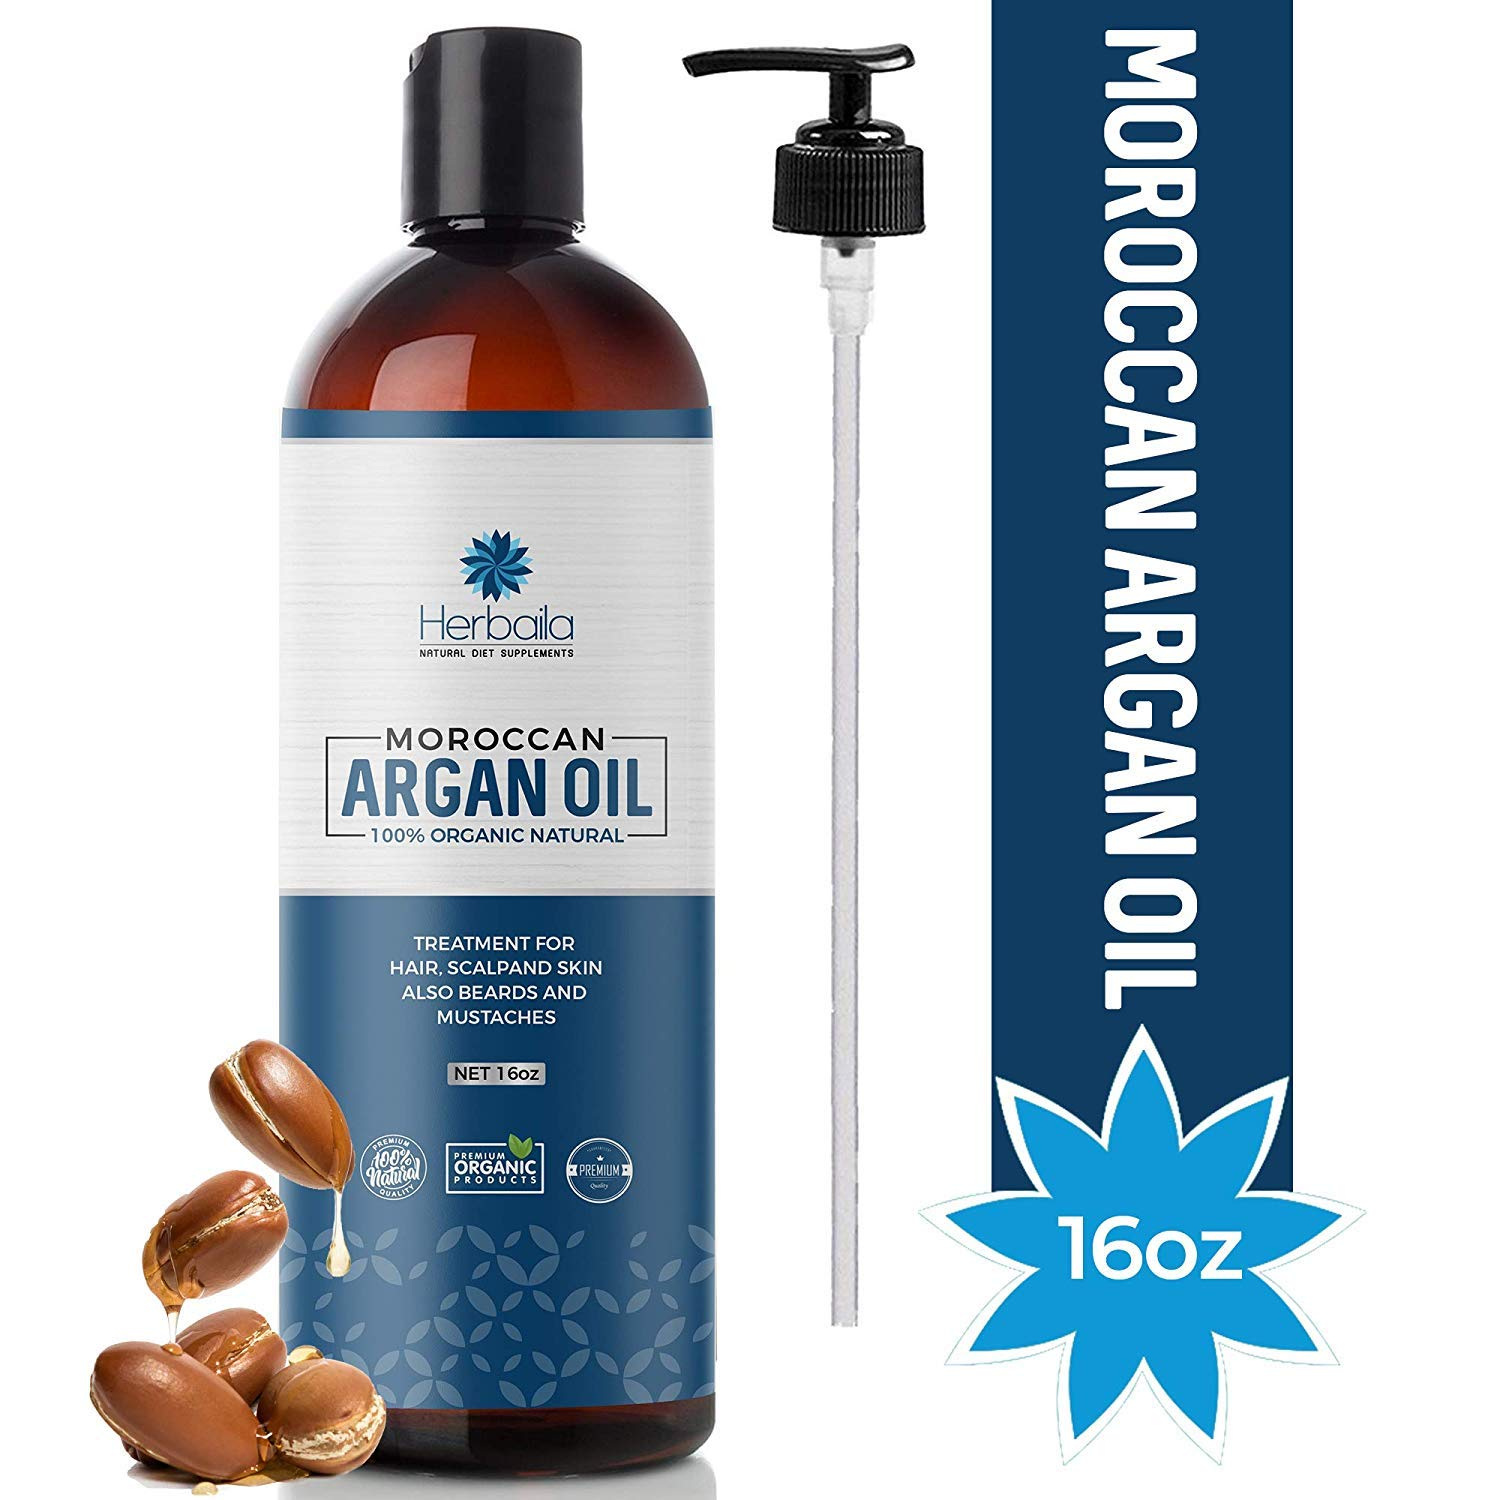 Moroccan Argan Oil 16oz, Cold Pressed Extra Virgin Oil for Hair, Skin, Face, Nails, Beard & Eyelashes, Anti-Aging Beauty Oil, 100% Pure & Organic, Deep Penetrating Moisturizer with Vitamin E